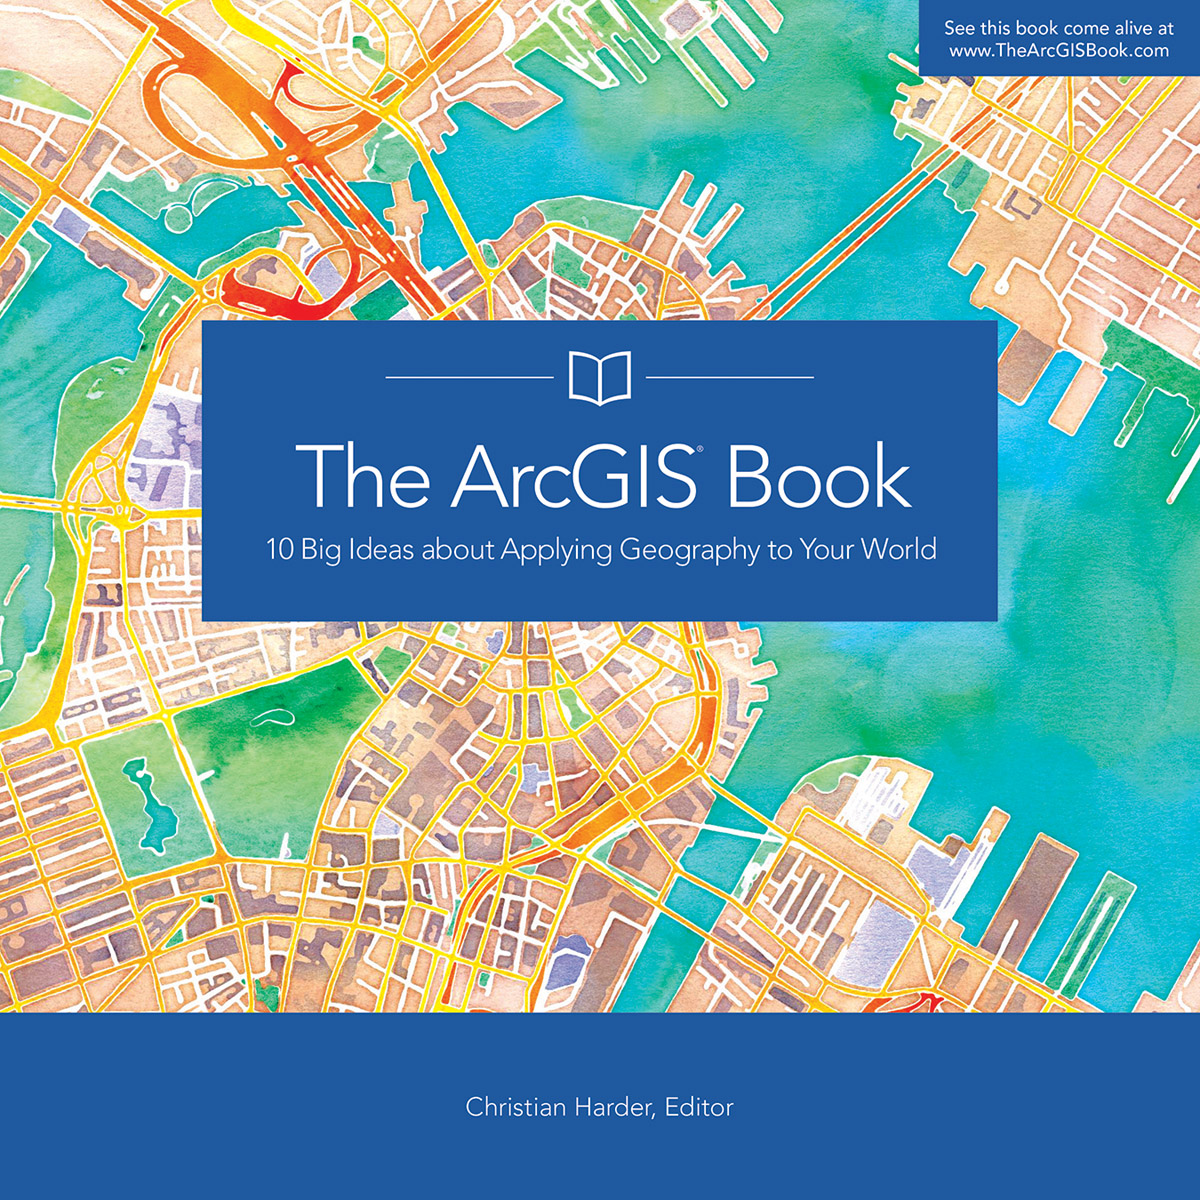 The ArcGIS Book is an easy-to-comprehend guide to 10 big web mapping ideas and how to use the ArcGIS platform to put those ideas into action.